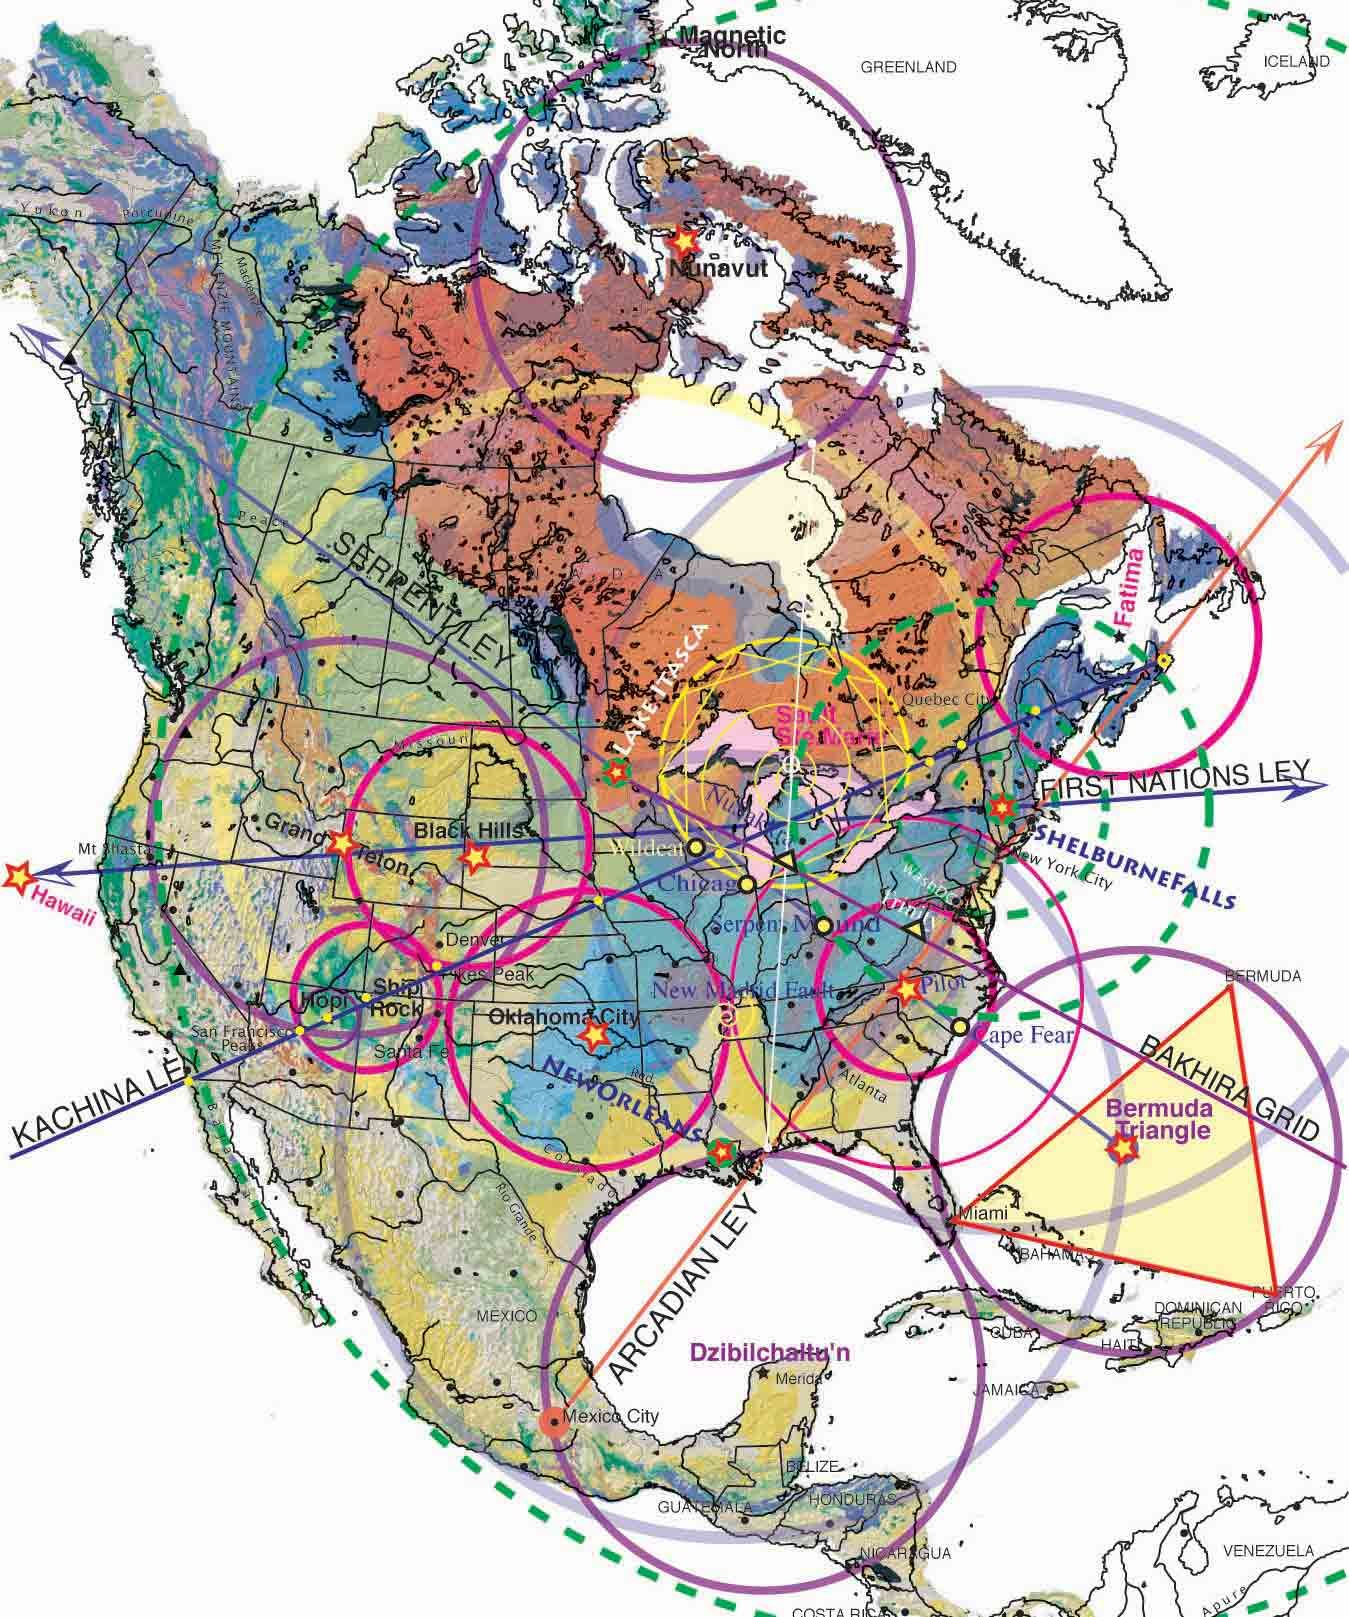 Fault Lines In America Pennsylvania Wiring Diagrams Oscillations An Lc Circuit Http Wwwprincetonedu Ssp Joseph Magnetic Ley Geology Patterns North Line Reading